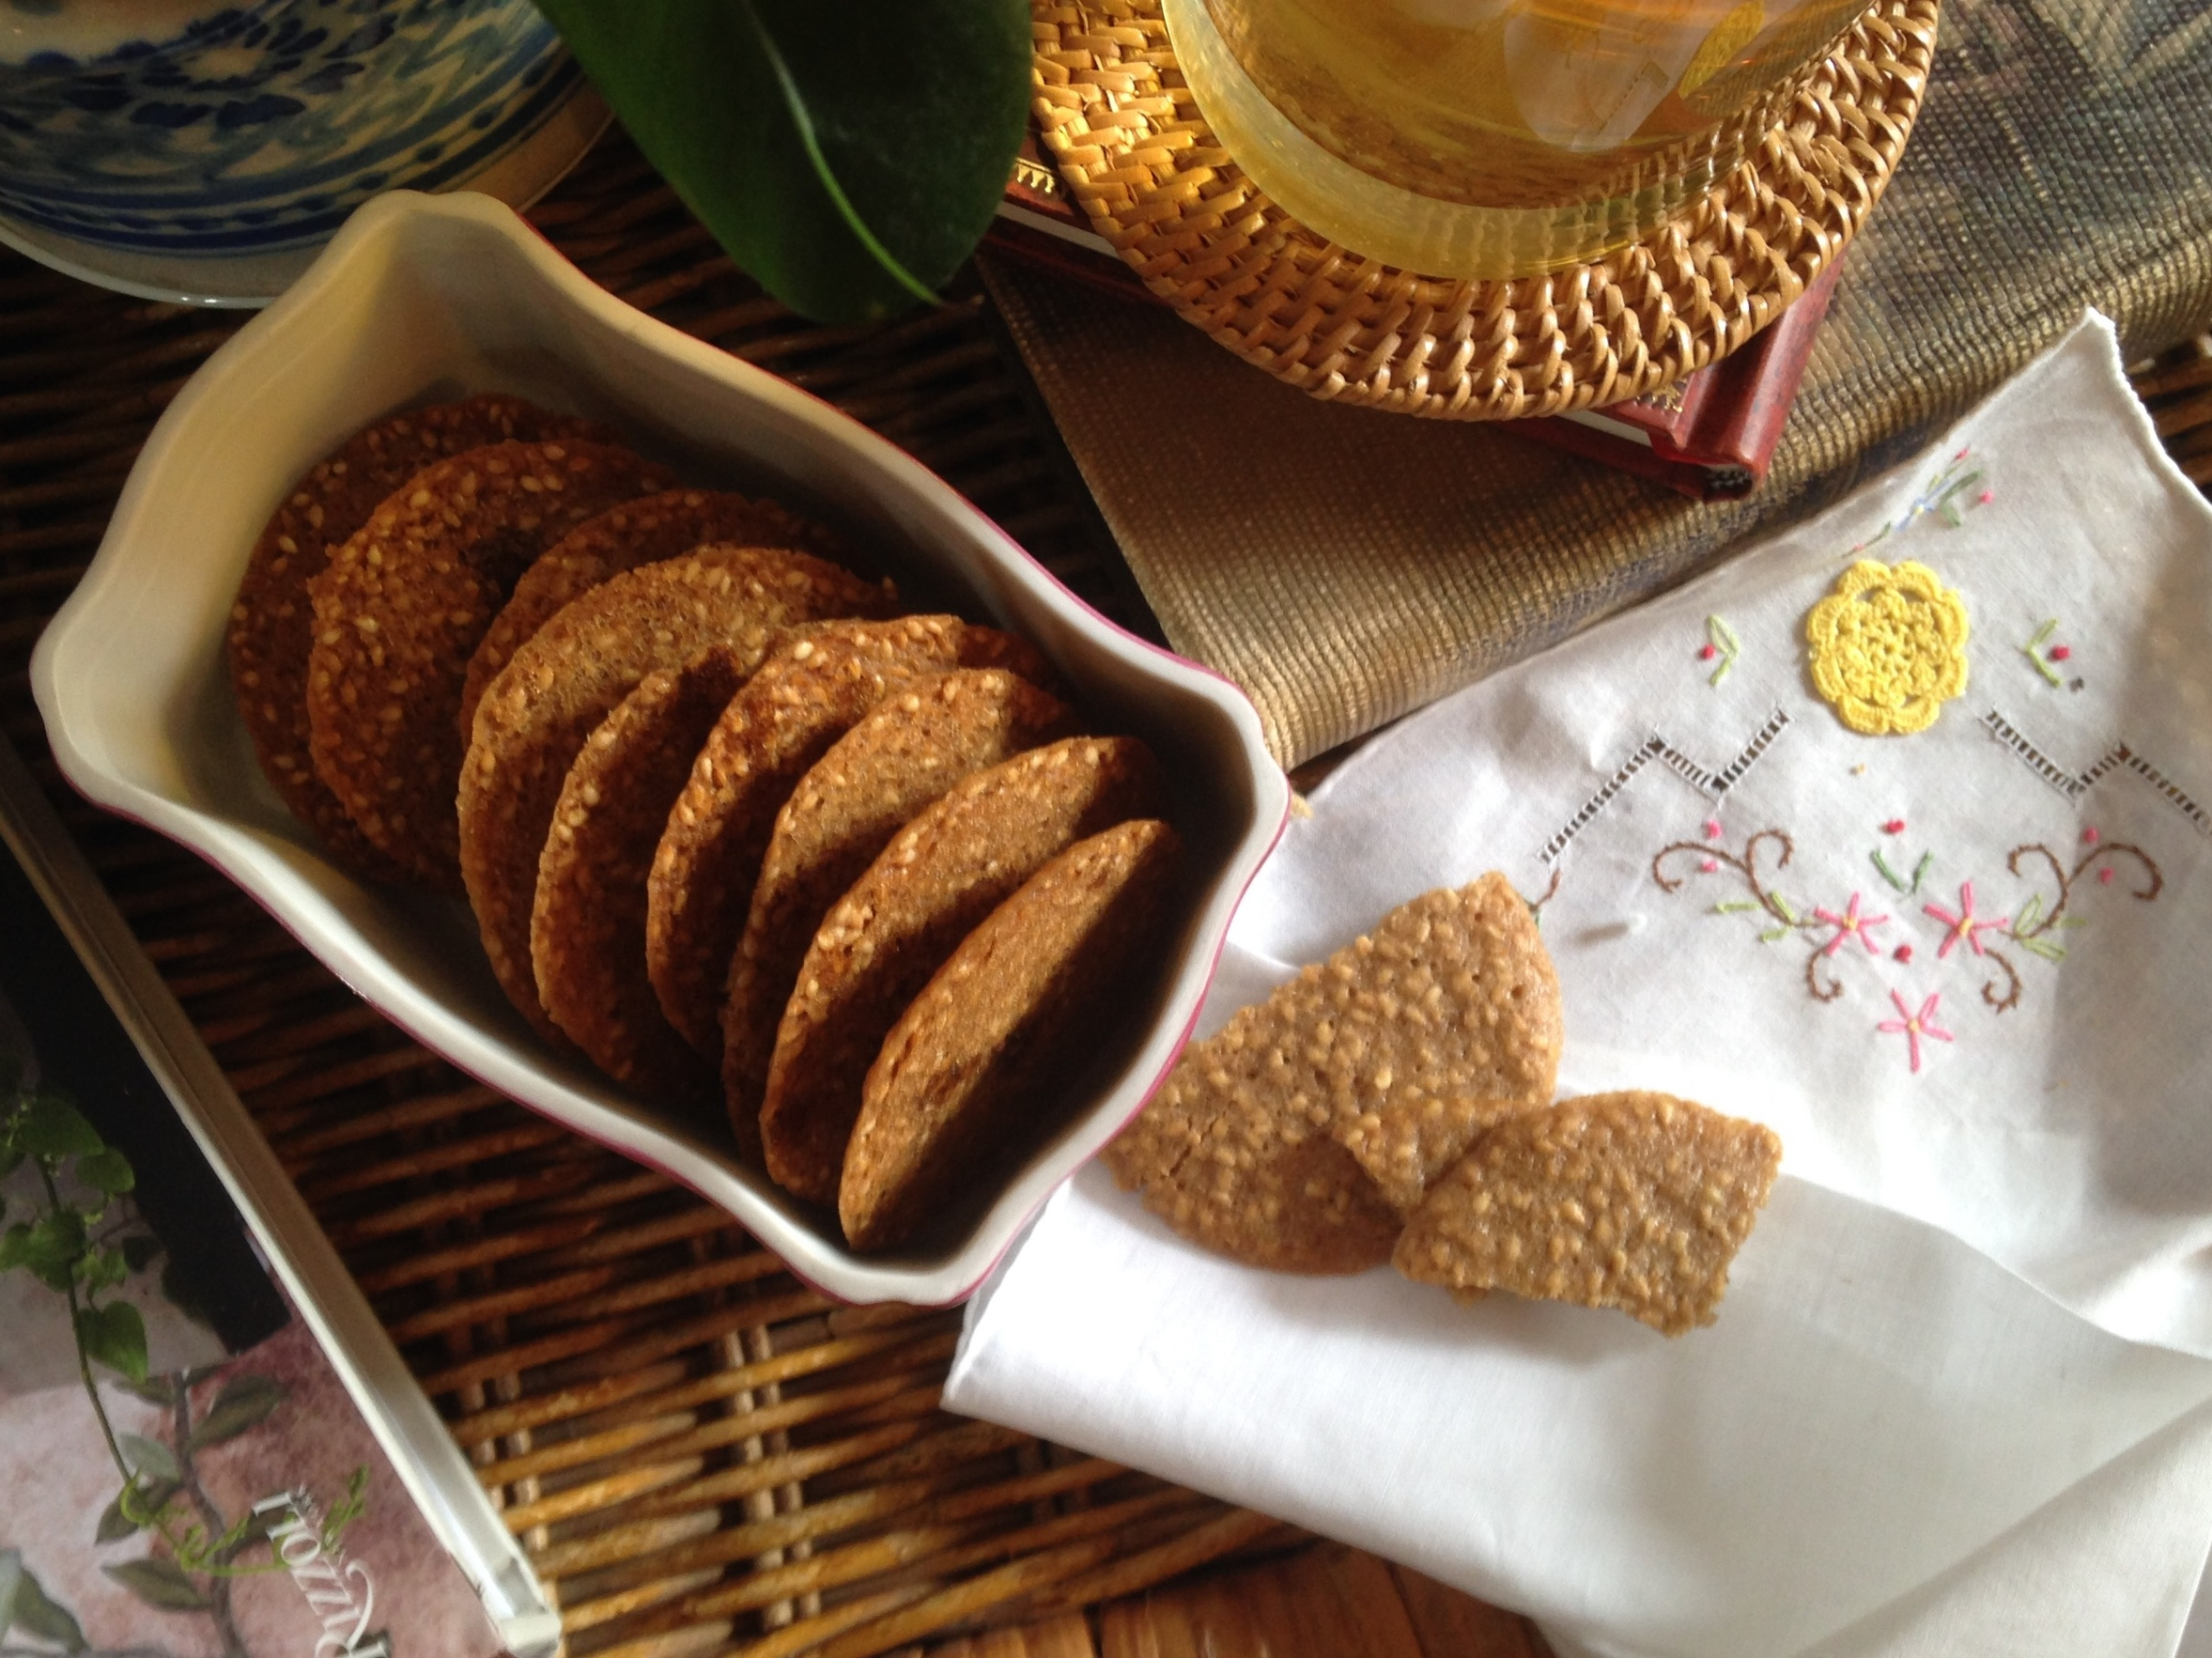 Benne Seed Wafers (Sesame Cookies). Scroll down for the recipe!